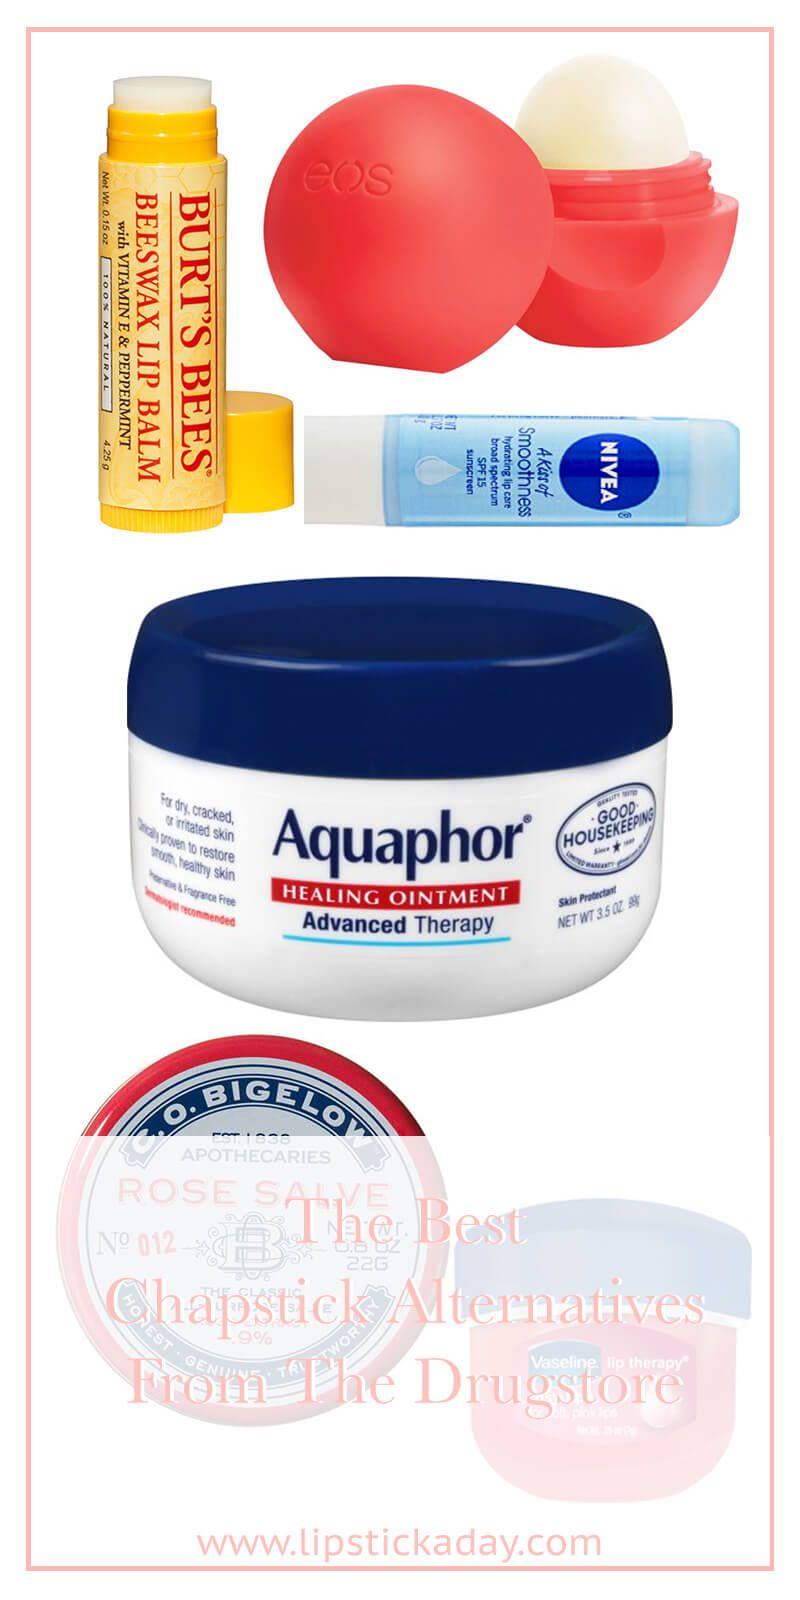 Best Chapstick Alternative You Can Find In The Drugstore With